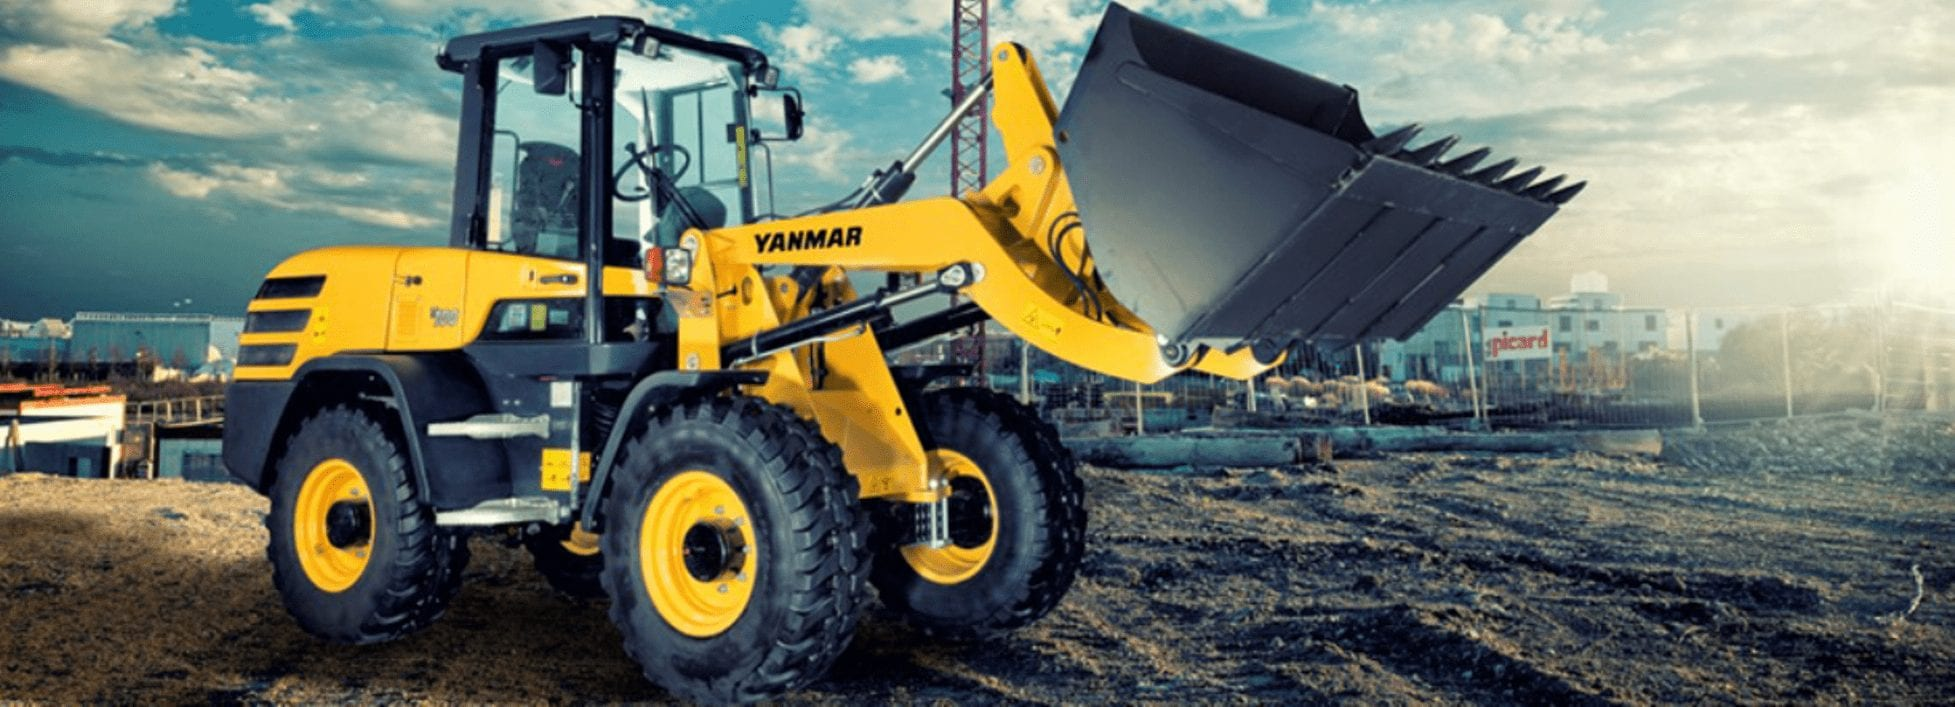 Mini Diggers | Excavators | Wheel Loaders | Dumpers by